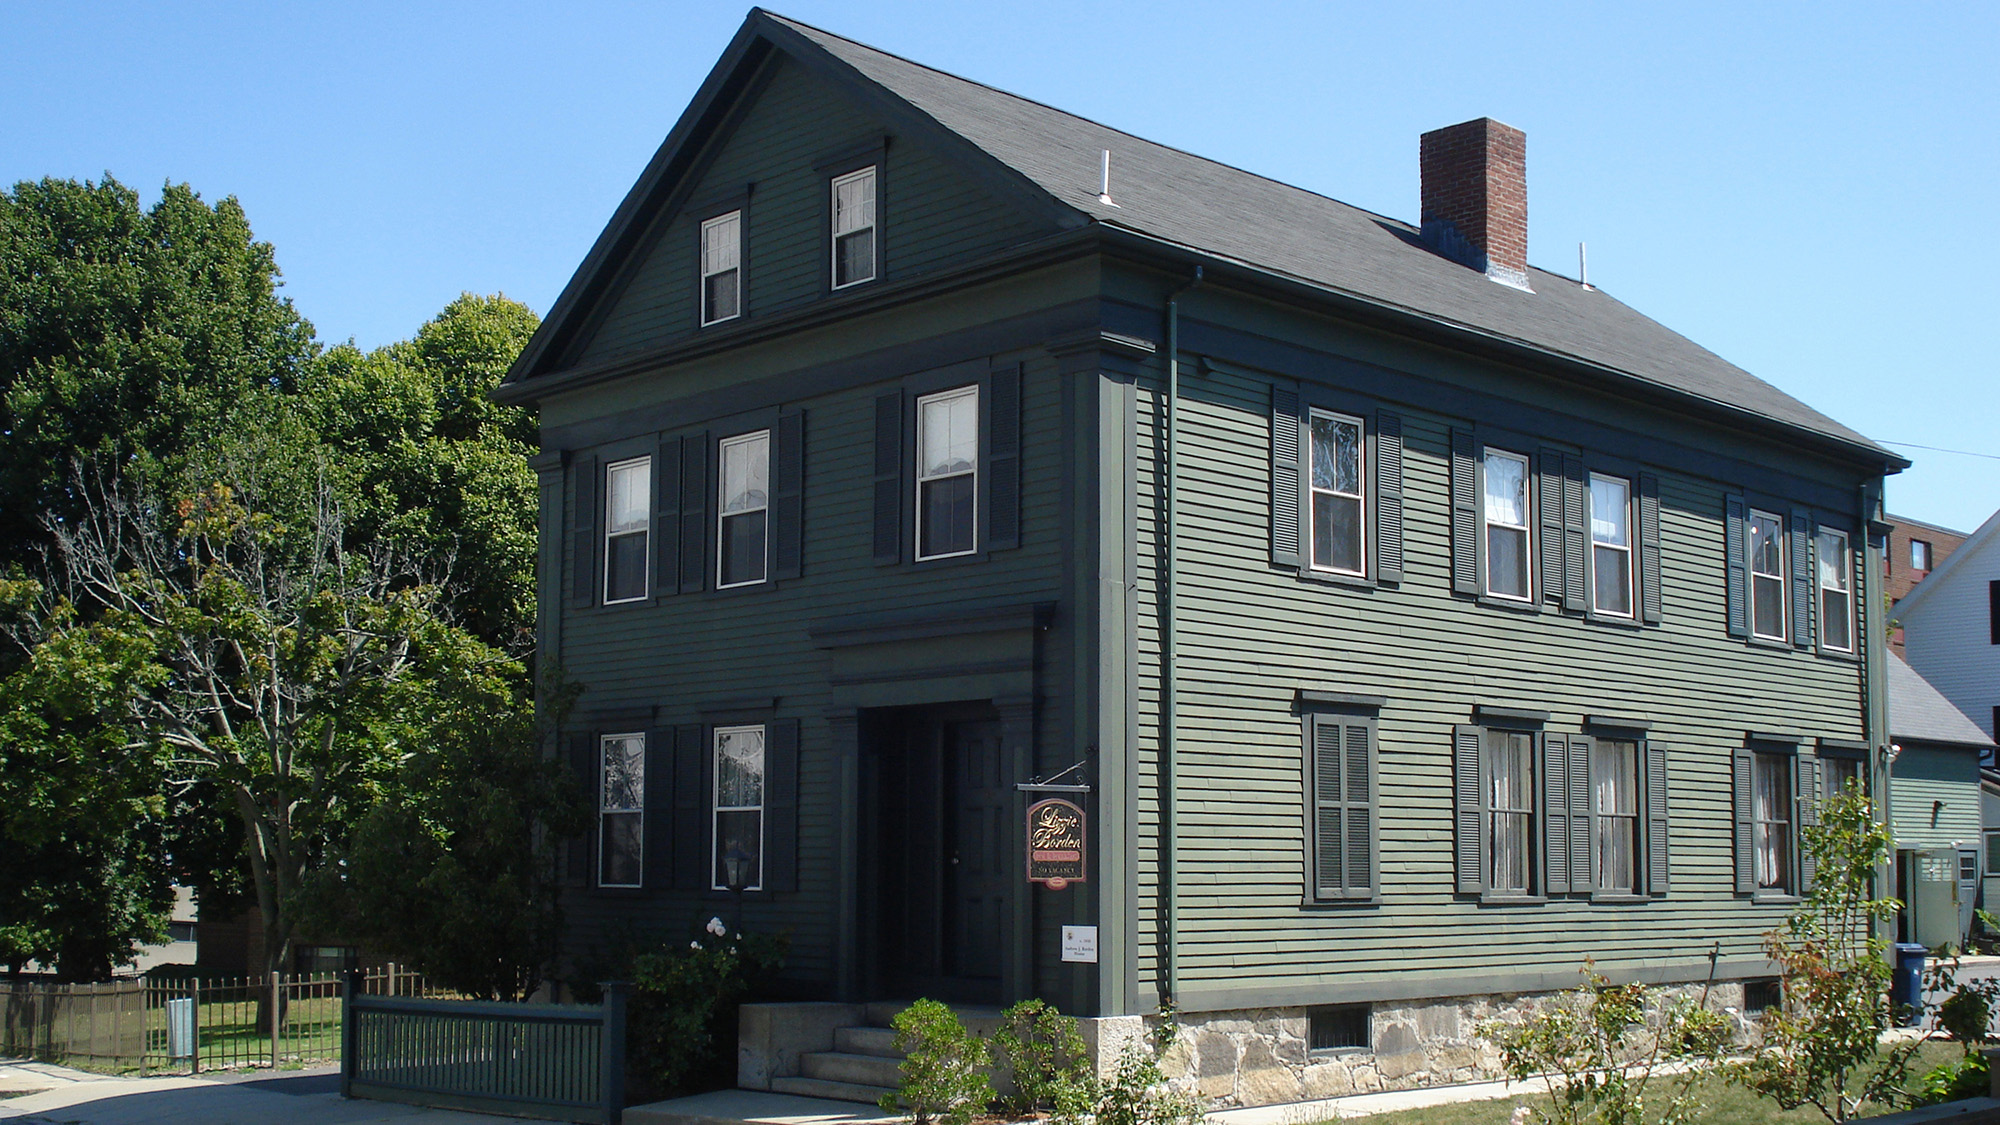 Lizzie Borden house hits the market for $2 million